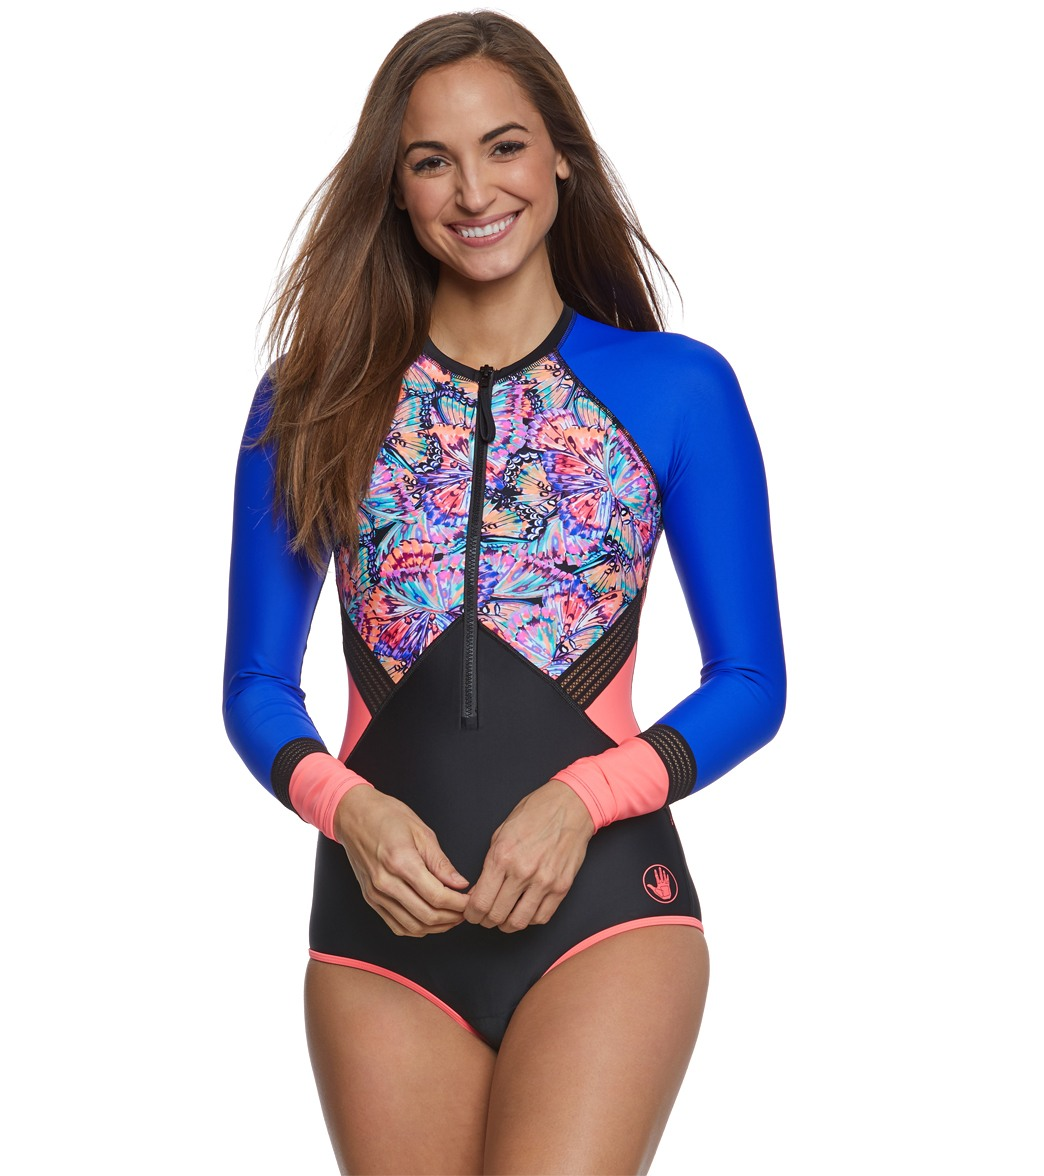 c6913db539 Body Glove Active Fly Surface Long Sleeve Paddle Suit at SwimOutlet.com -  Free Shipping